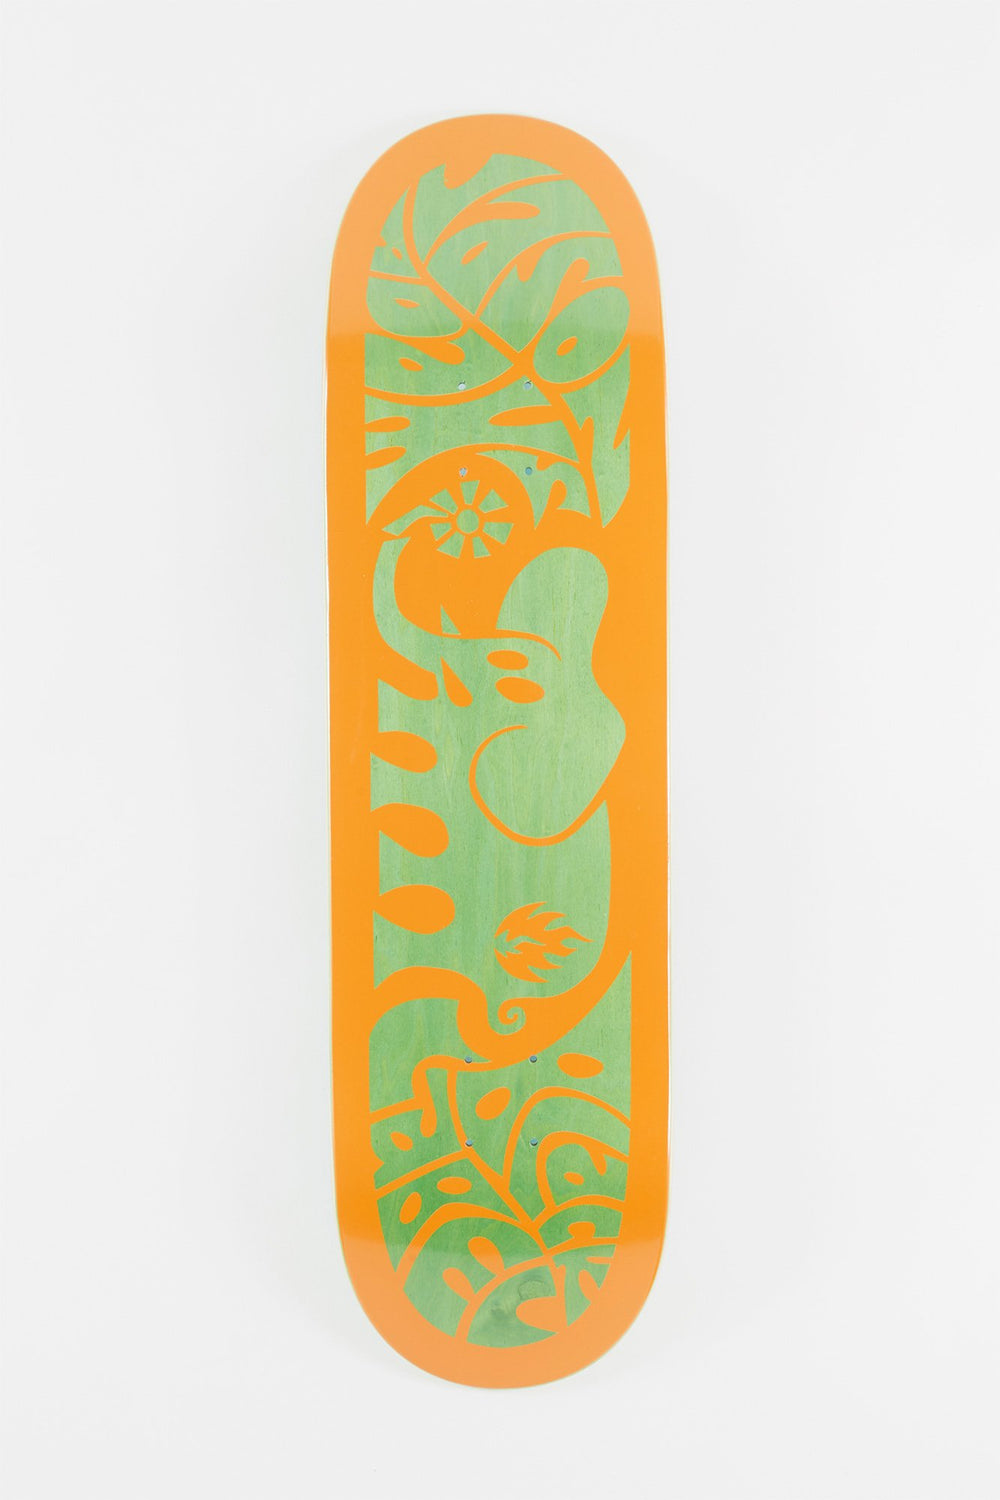 Black Label Jason Adams Skateboard Deck 8.68